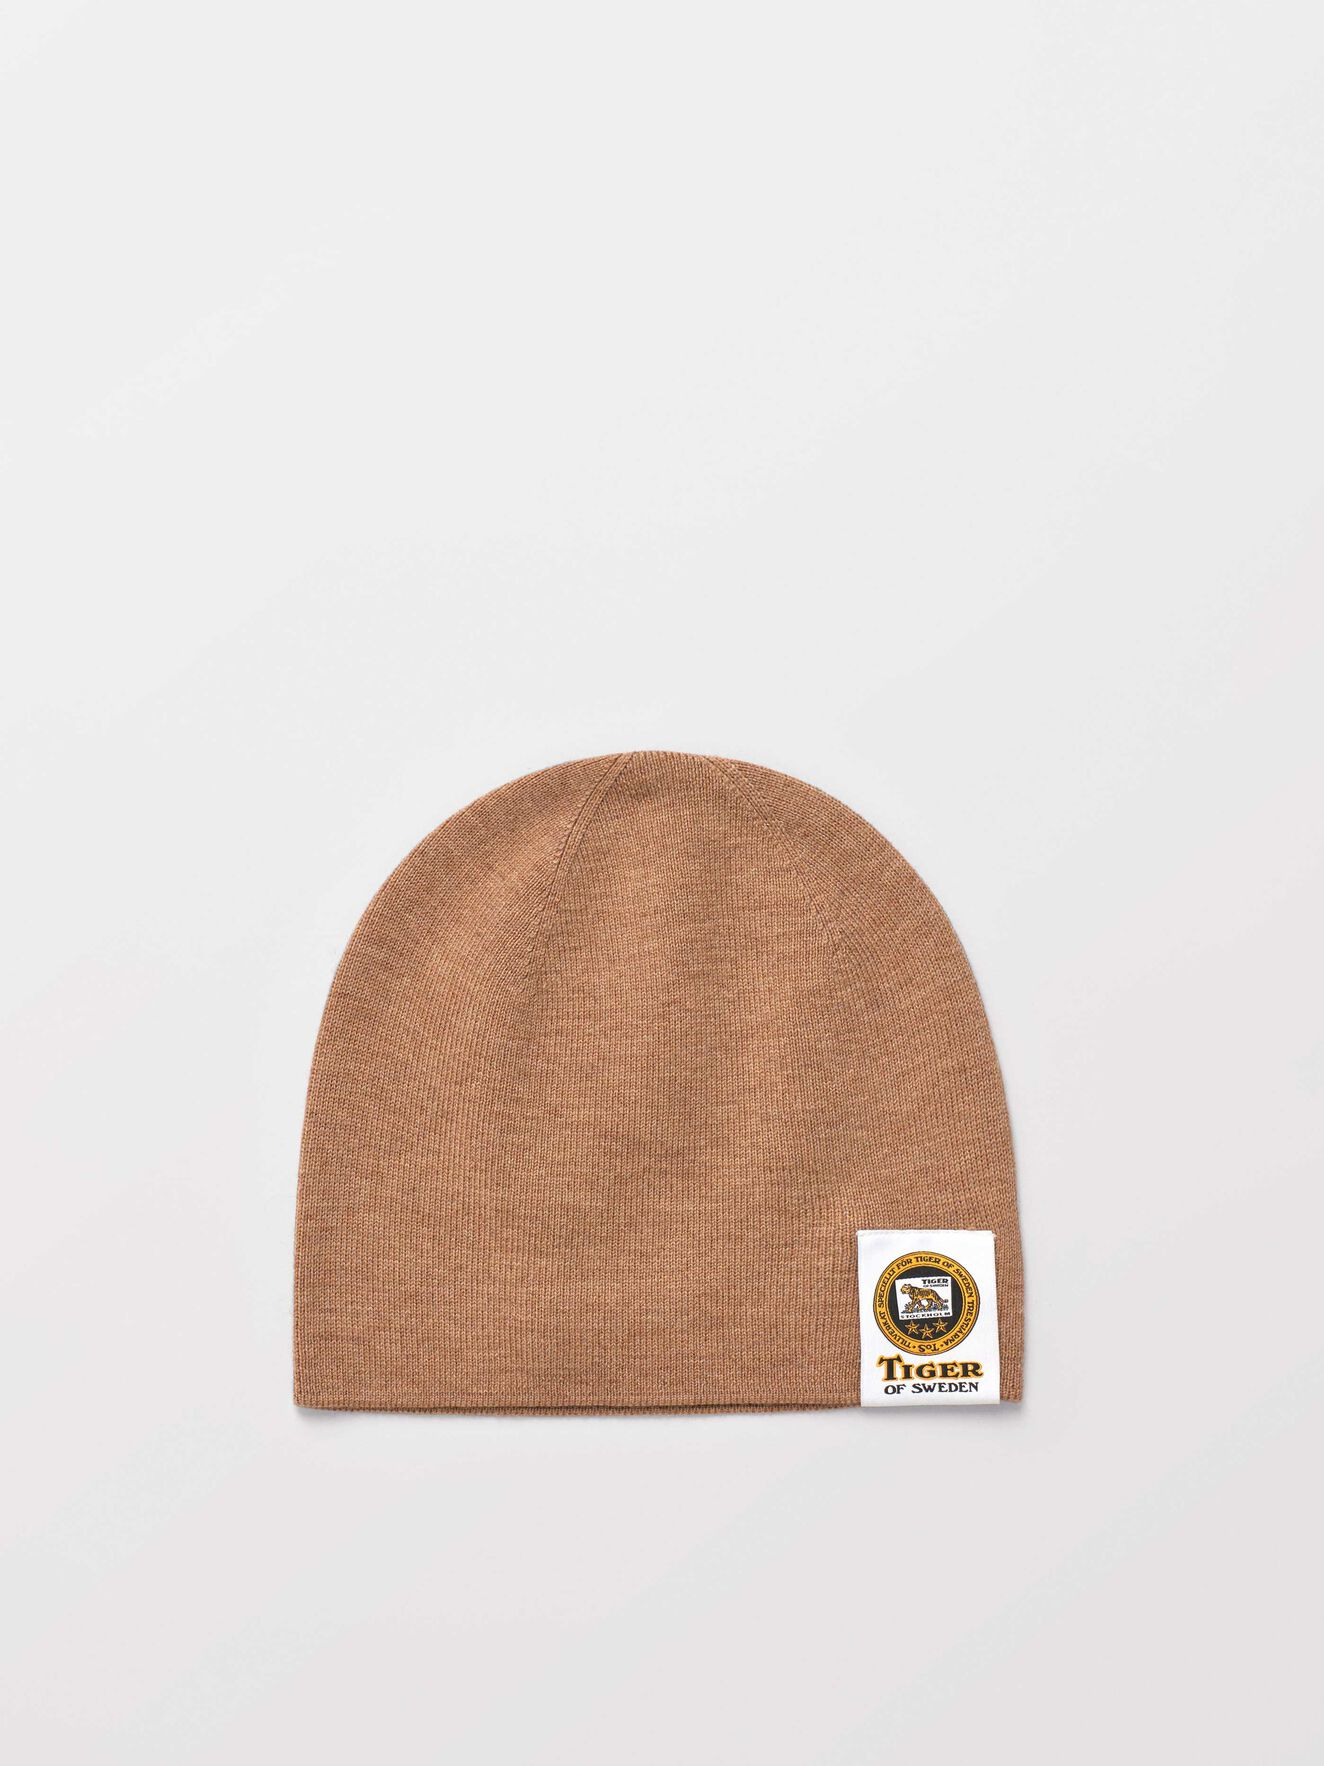 Sannder Beanie in Macchiato from Tiger of Sweden